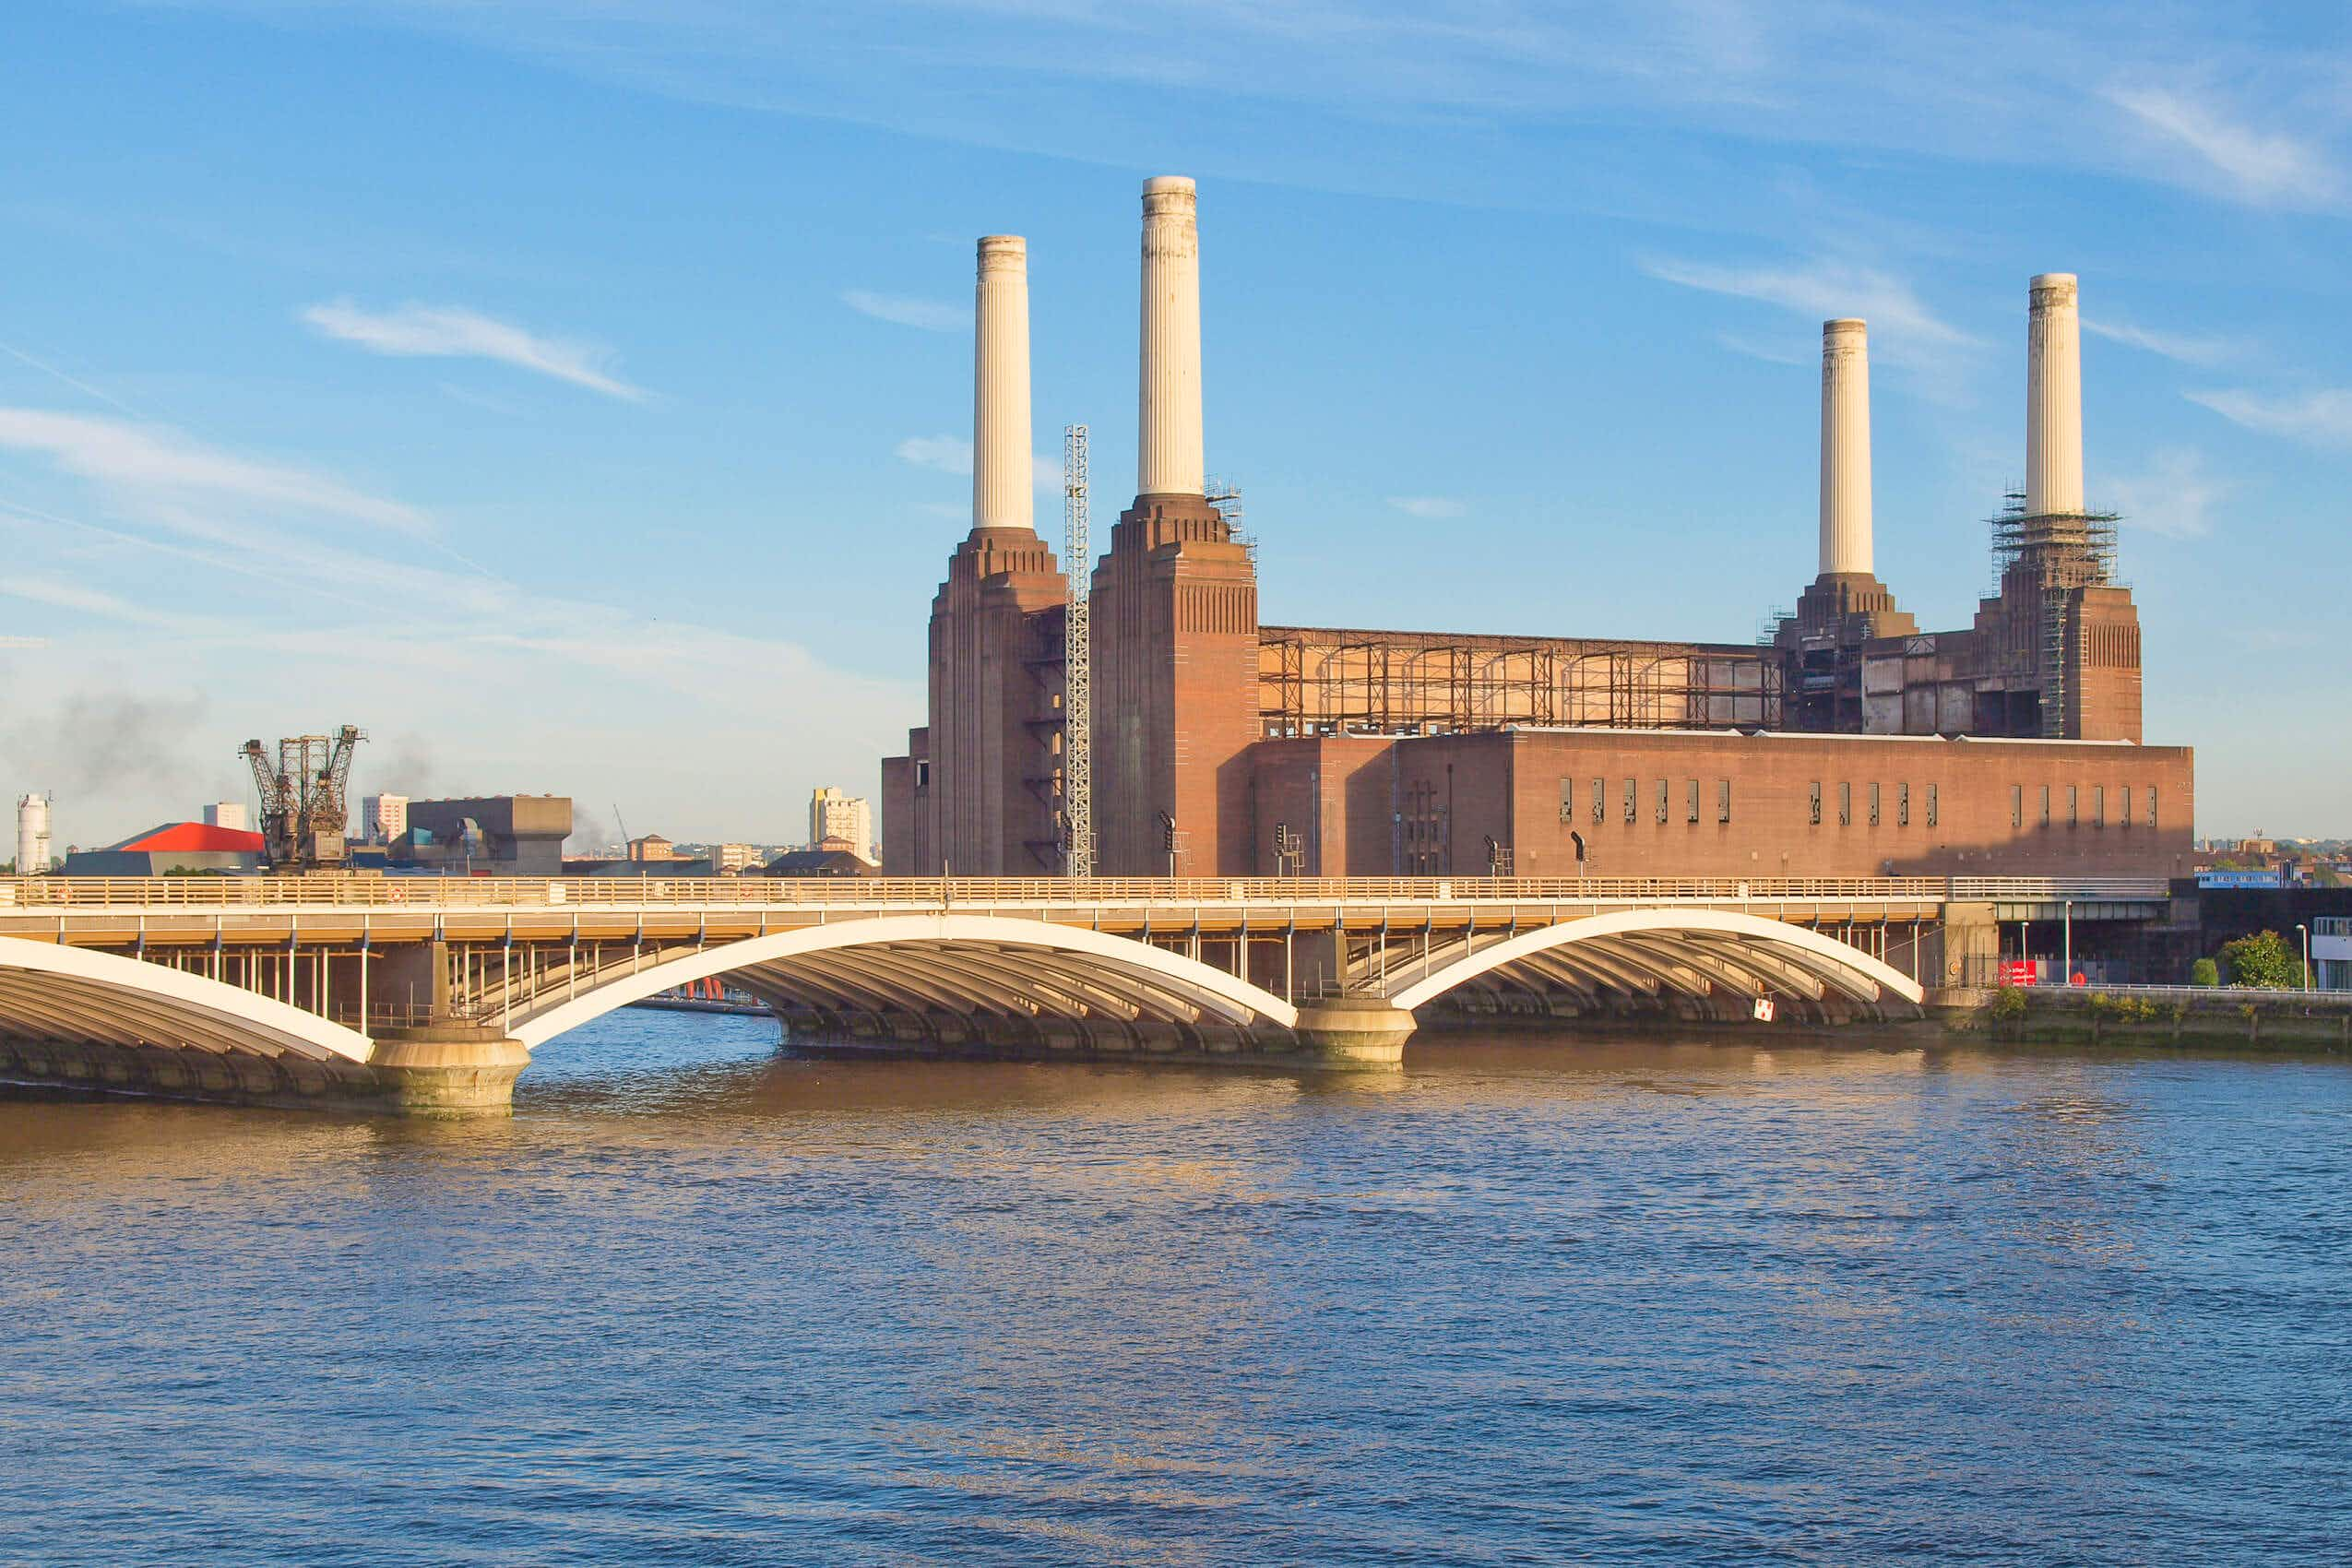 London's Battersea Power Station's iconic chimneys are set to be restored